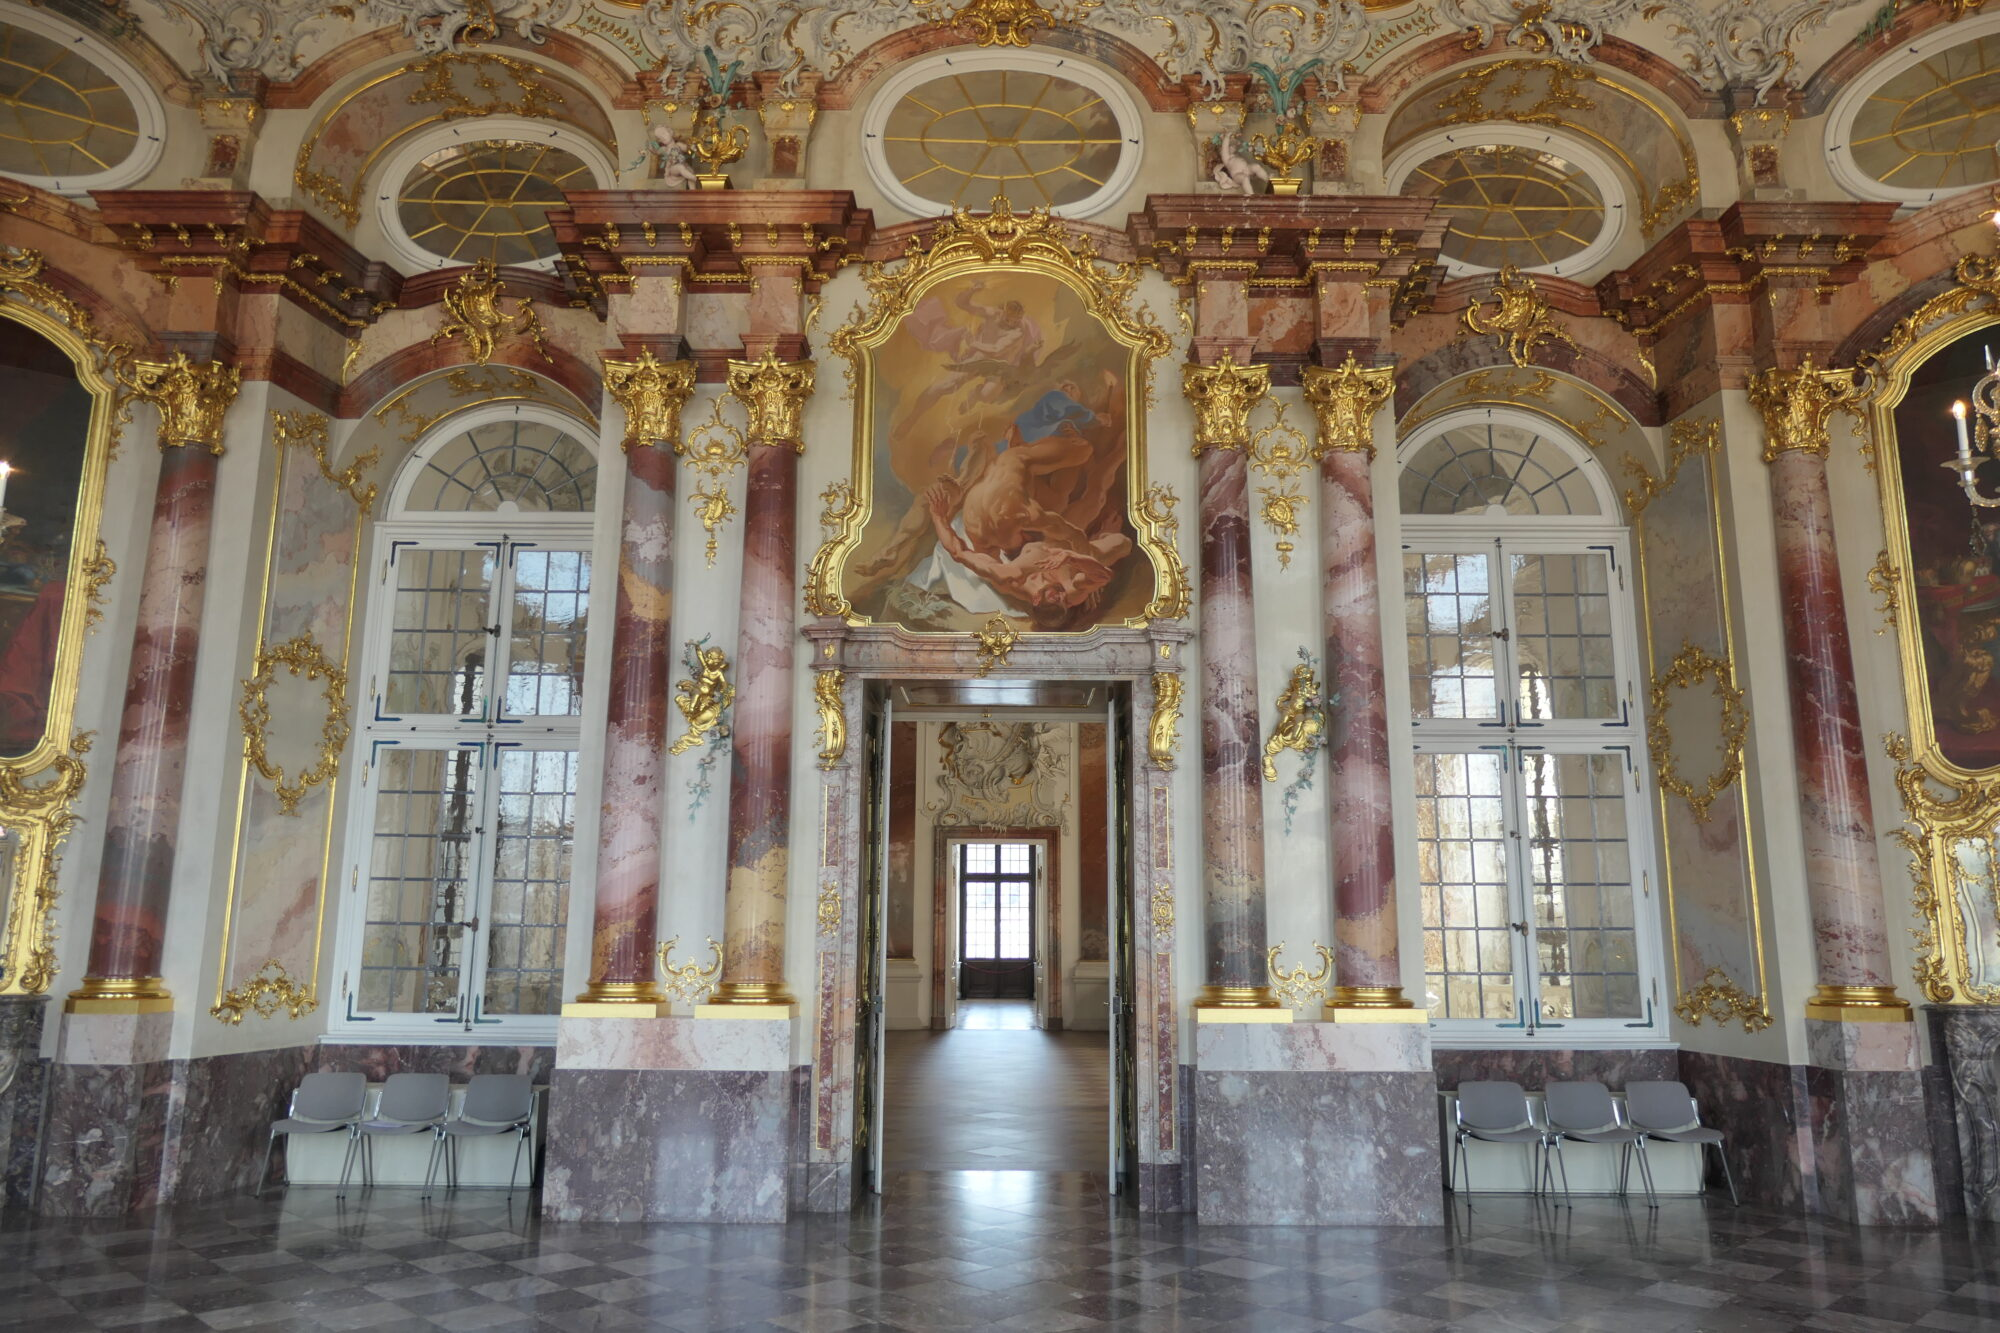 The marble hall at Bruchsal Palace.